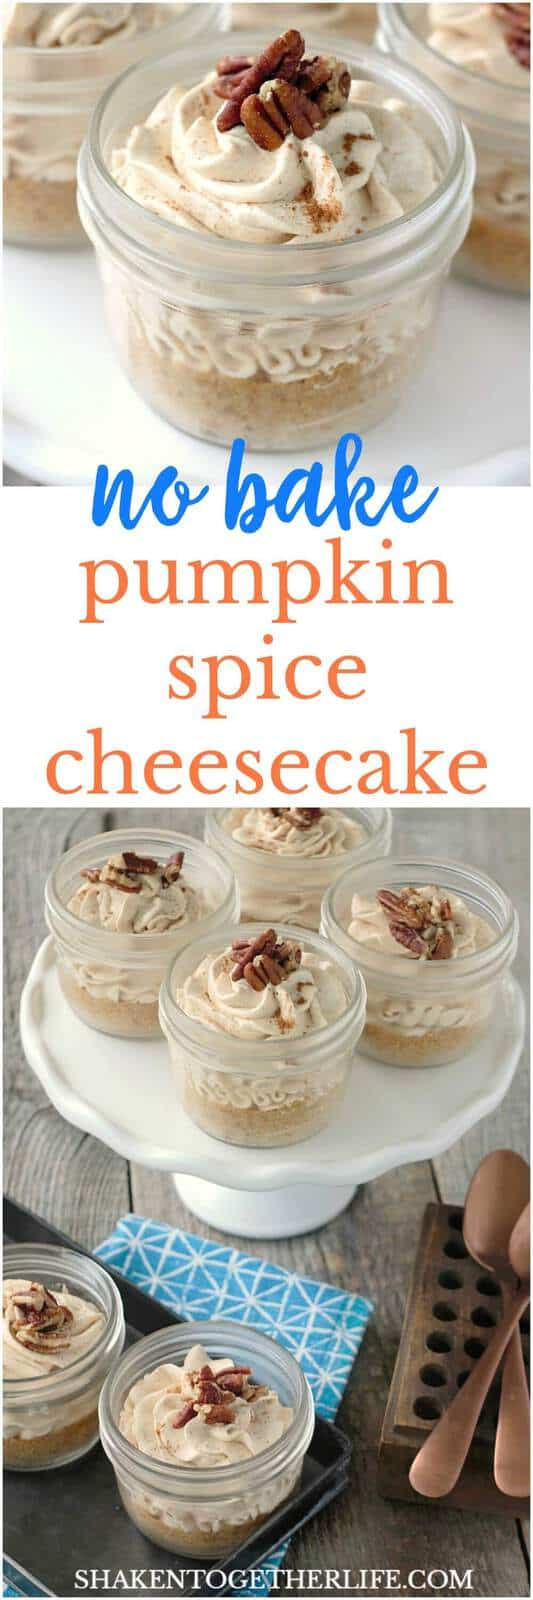 This No Bake Pumpkin Spice Cheesecake recipe has just a handful of ingredients and BIG pumpkin spice flavor! This no fuss Fall dessert is quick, easy and delicious!